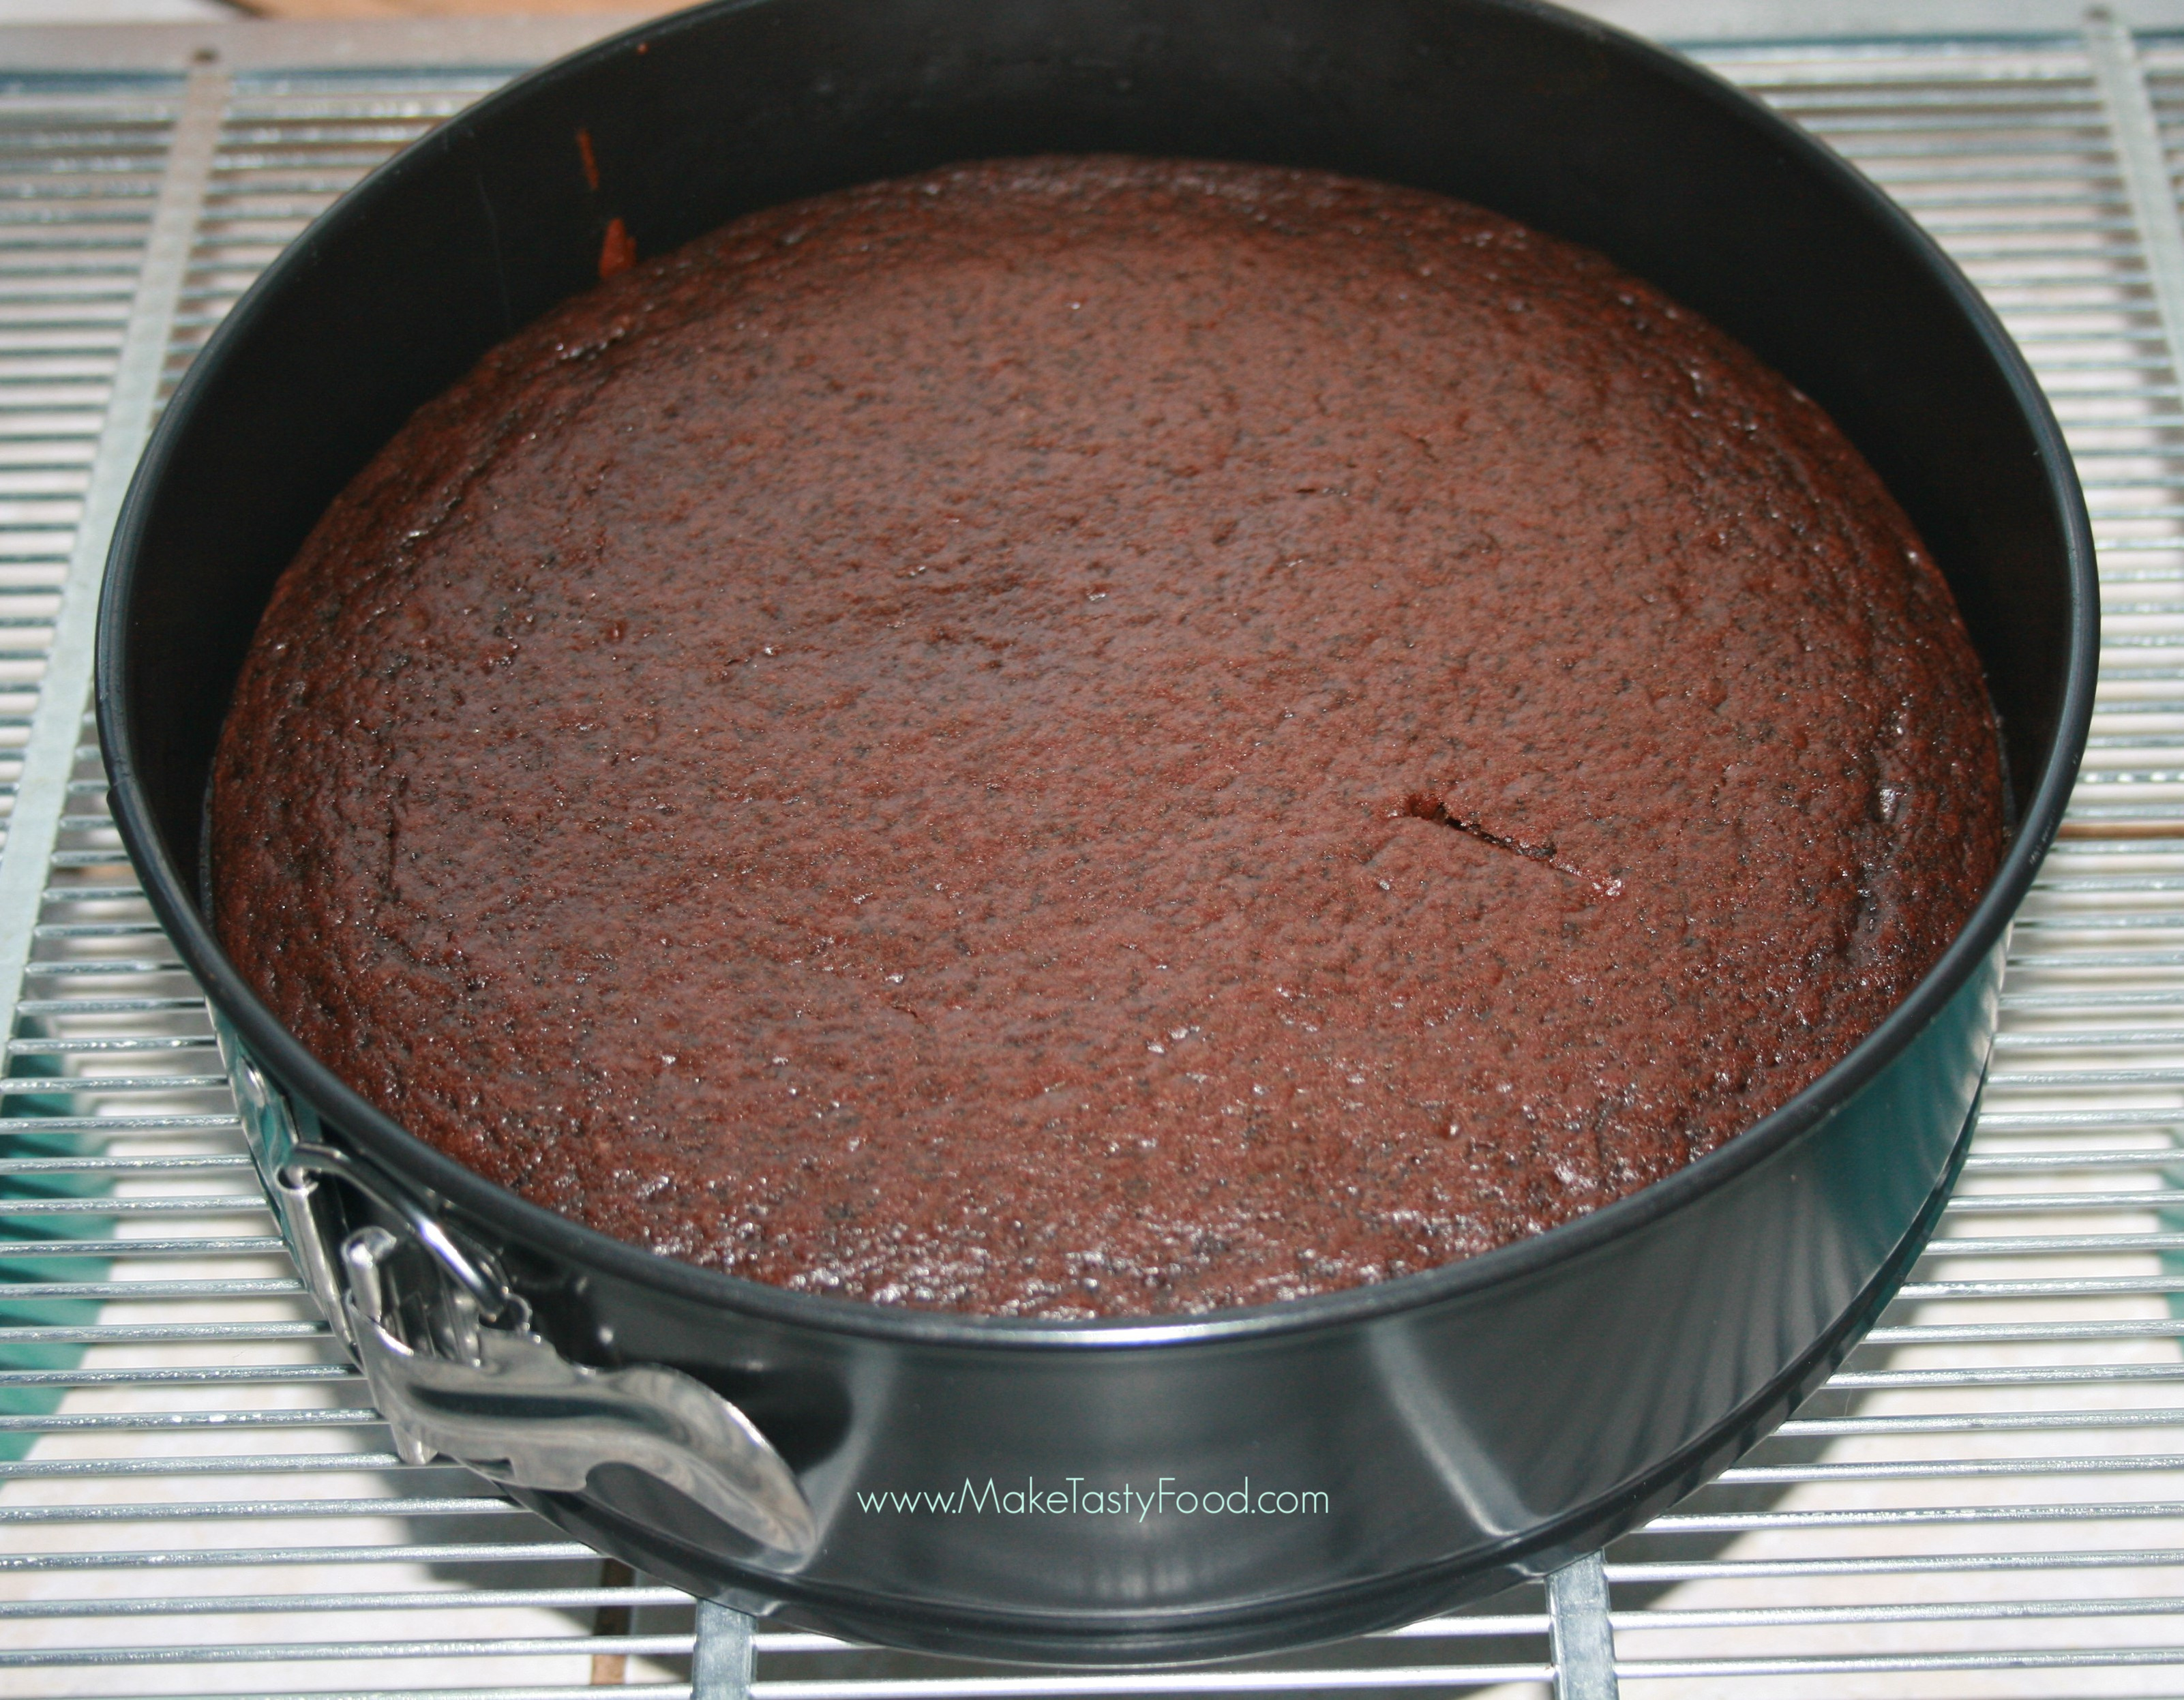 using this microwave cake in an conventional oven cooling on a rack